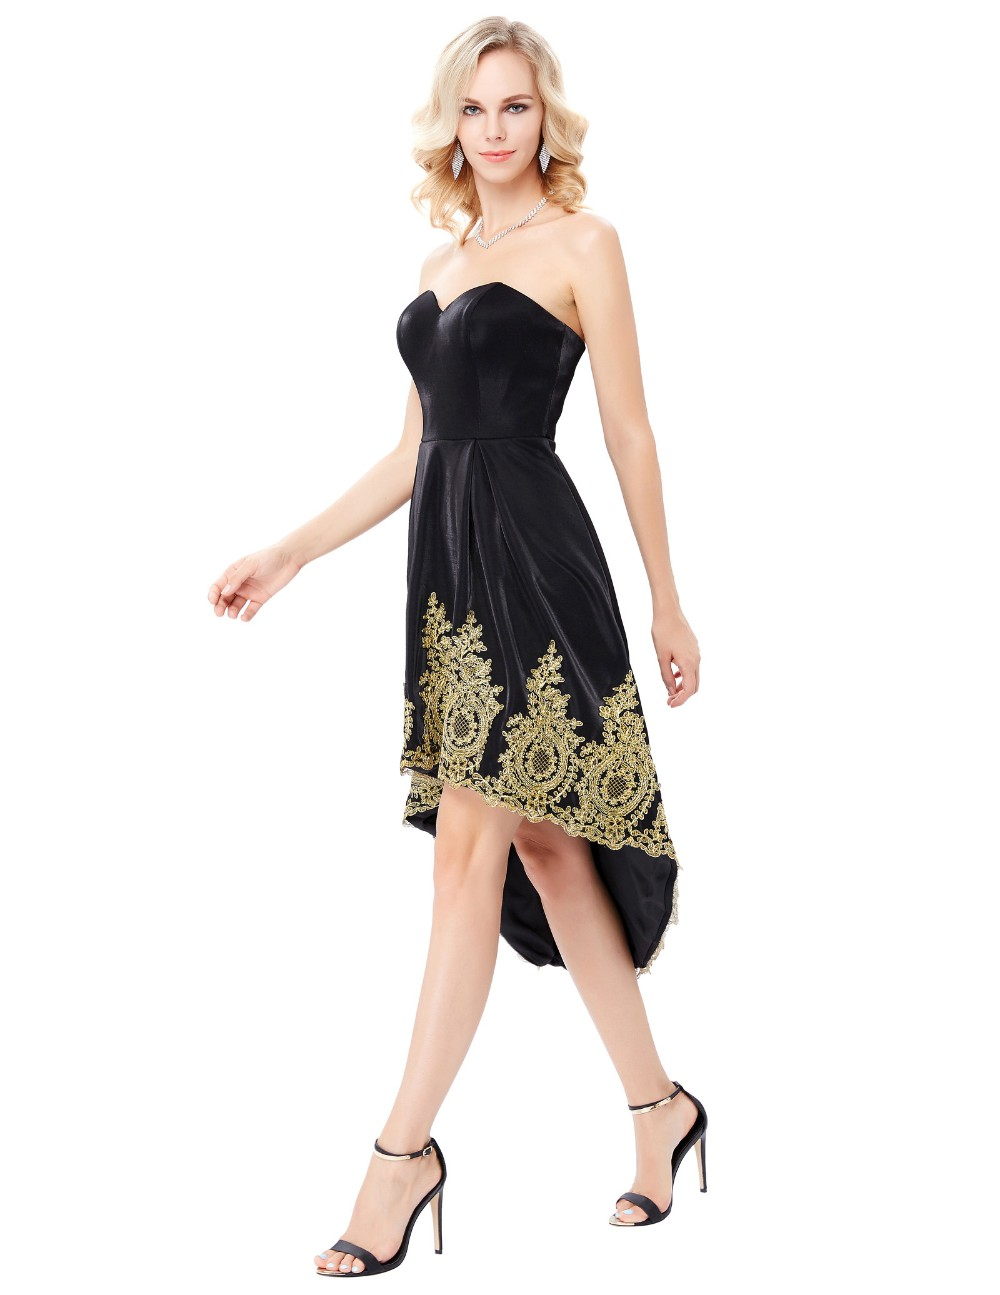 Grace Karin Strapless Sweetheart High-Low Appliqued Flannelette Black Party Dress Homecoming Dress GK000136-1